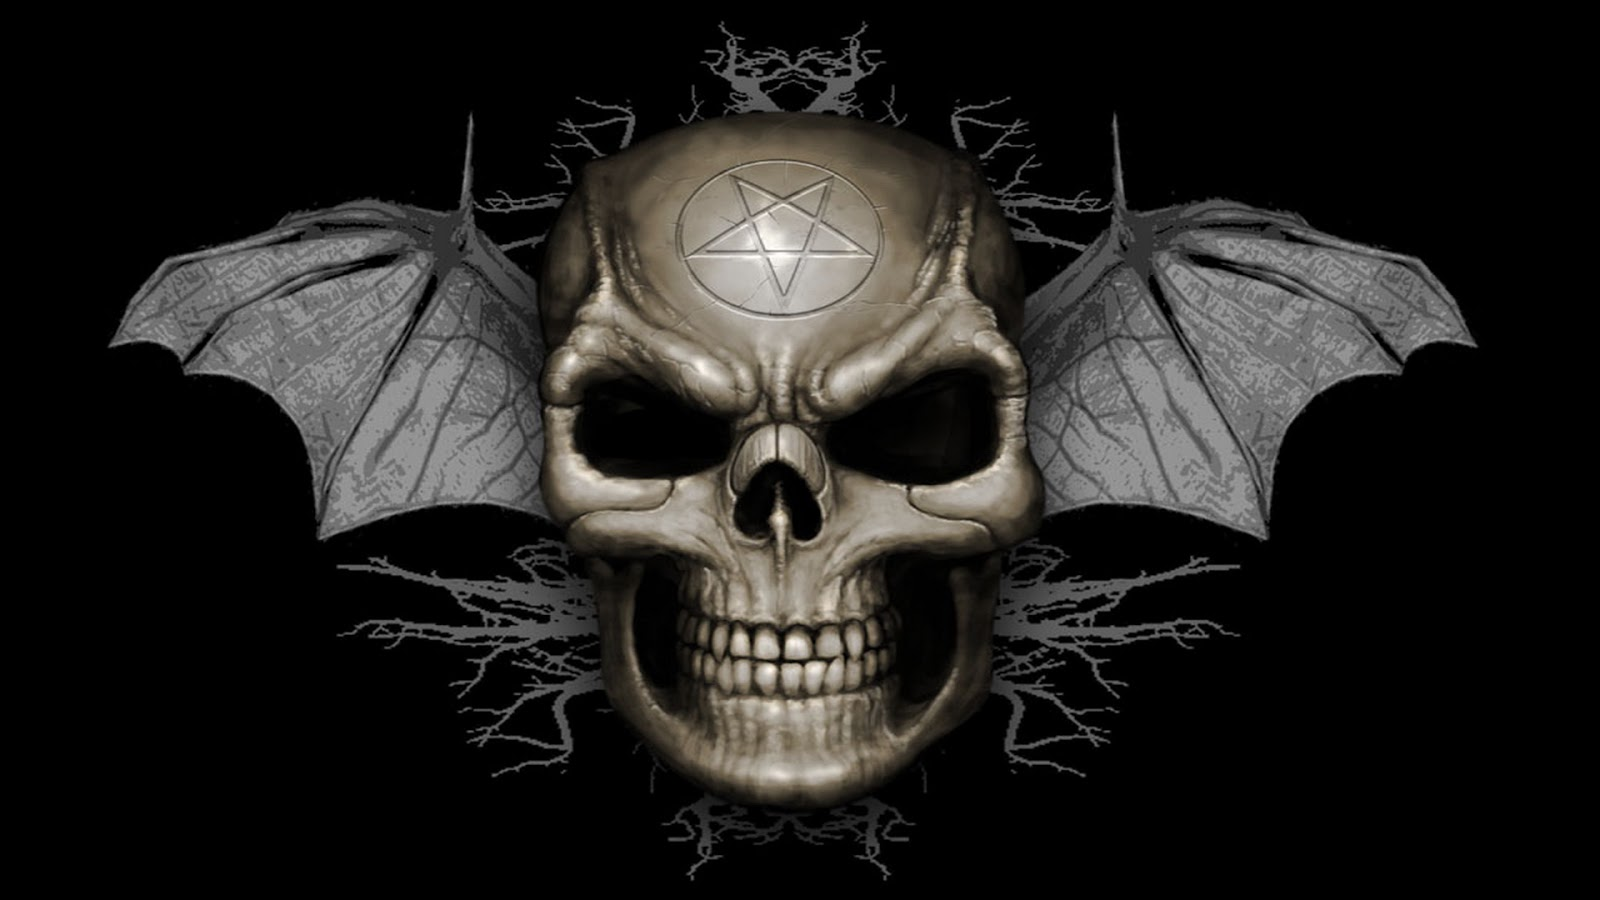 skull wallpaper wallpapers hd - photo #16